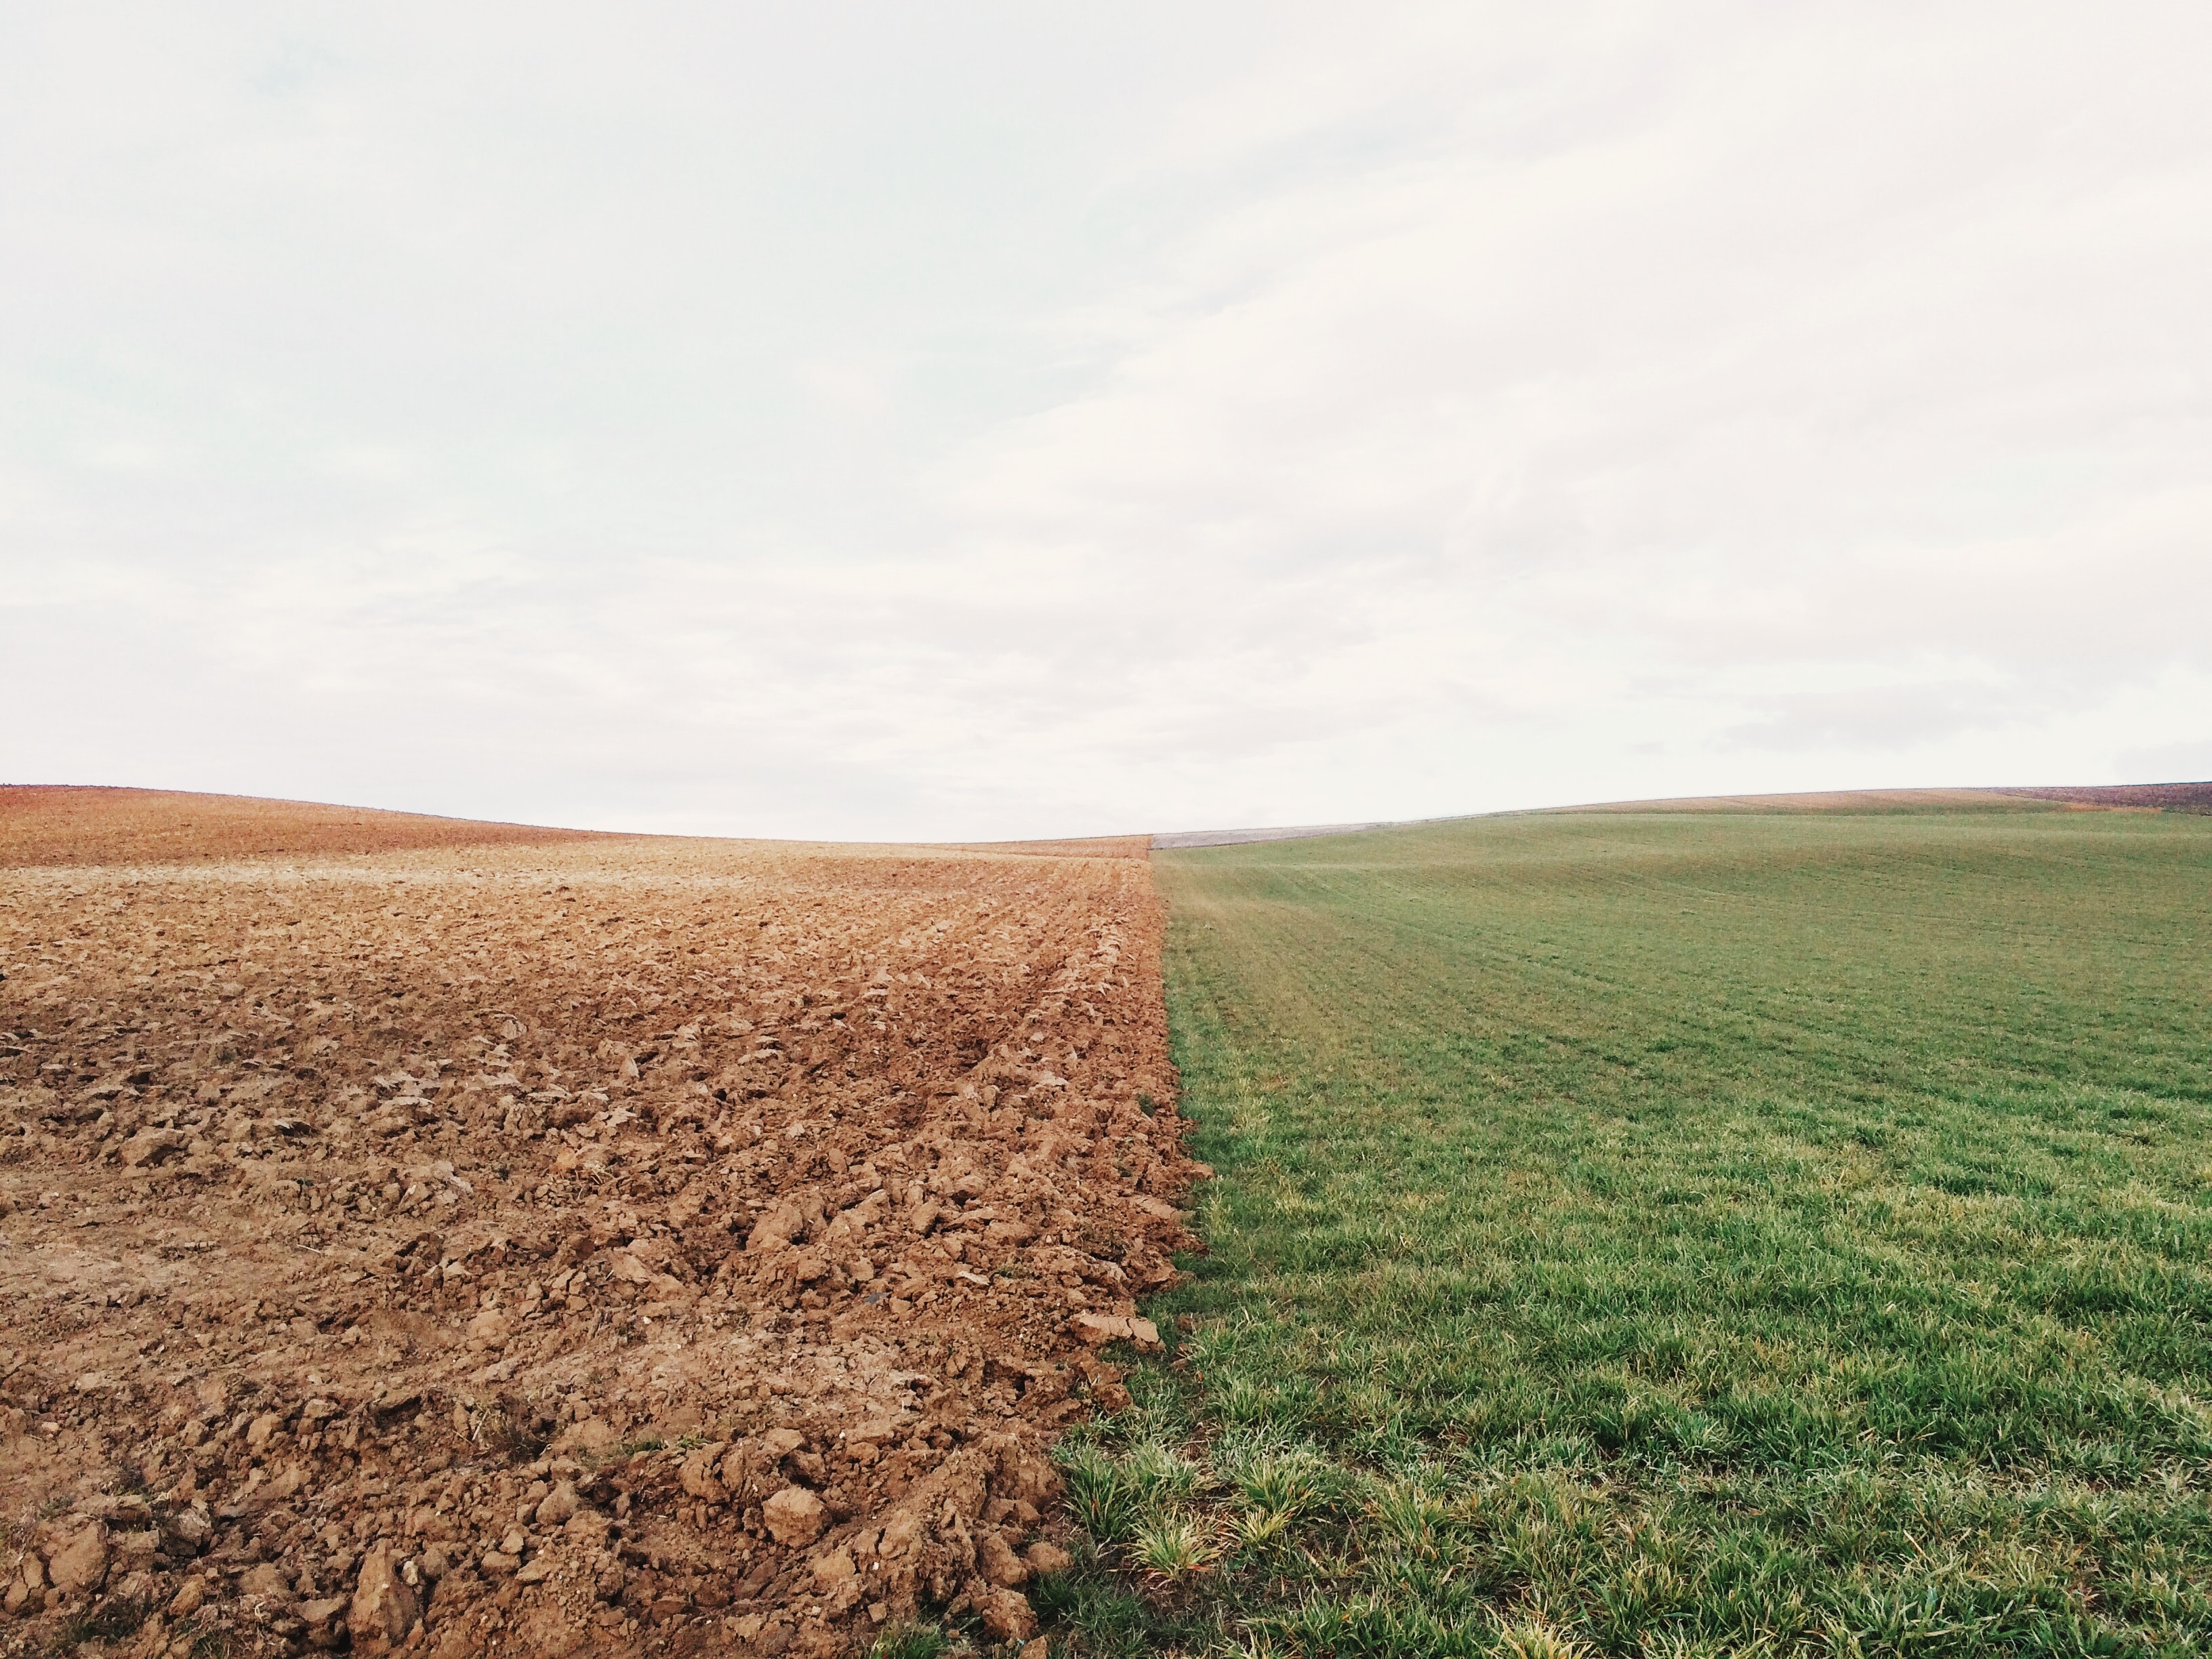 A dramatic shot of a straight line dividing a plowed field from a grass field